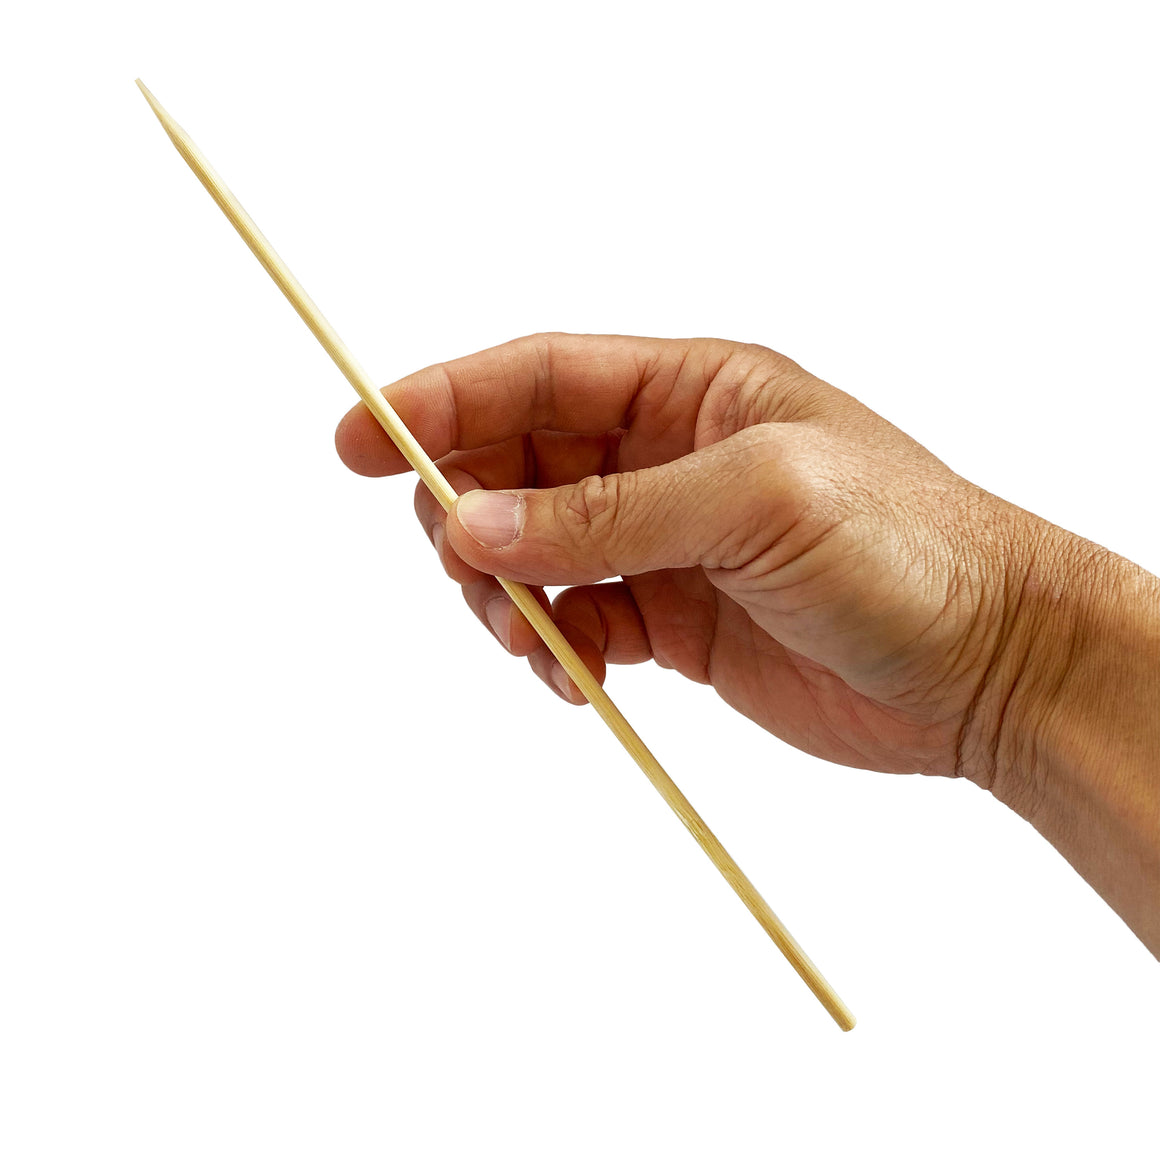 KingSeal Natural Bamboo Kebab Skewers, Sticks, 10 Inch Length x 3.8mm Diameter